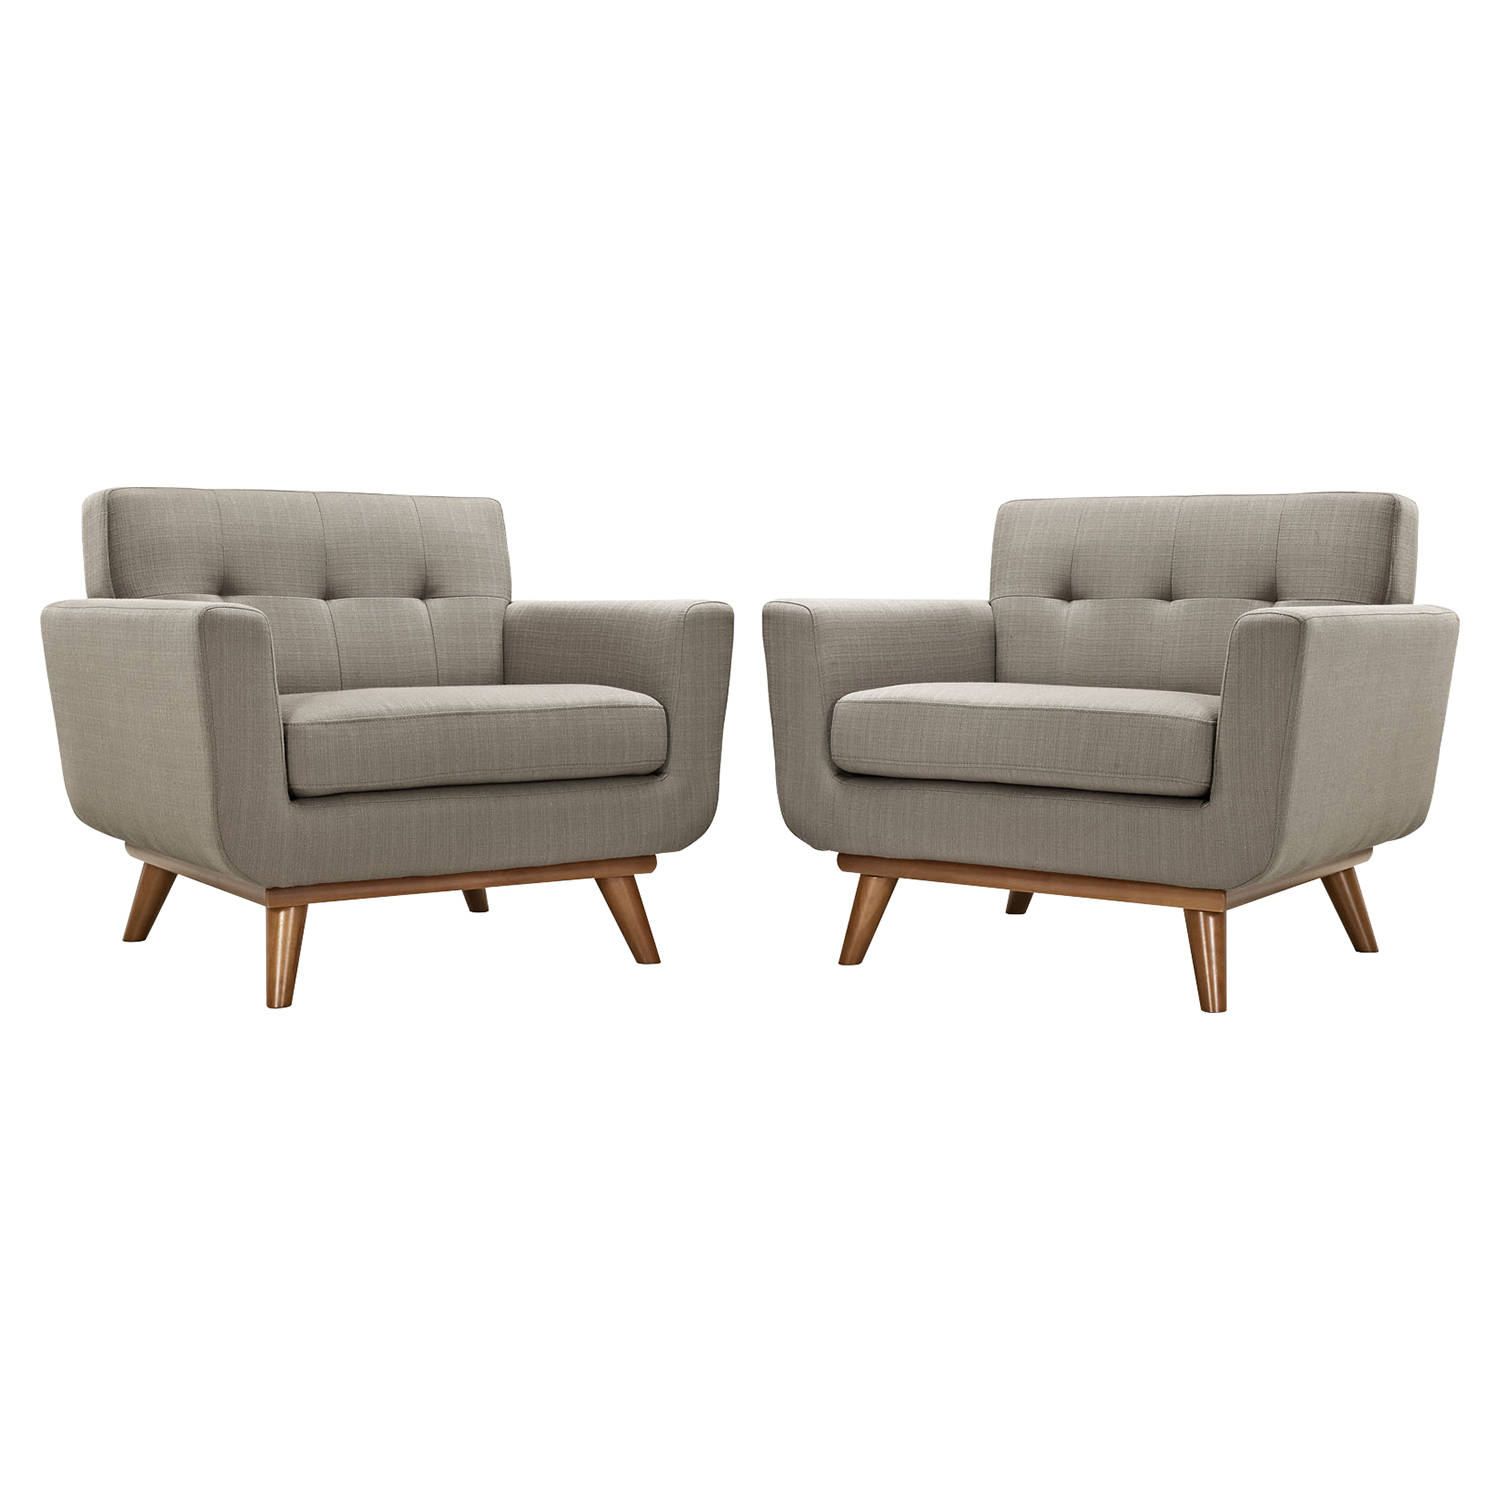 Engage Wood Armchair - Tufted (Set of 2) - EEI-1284